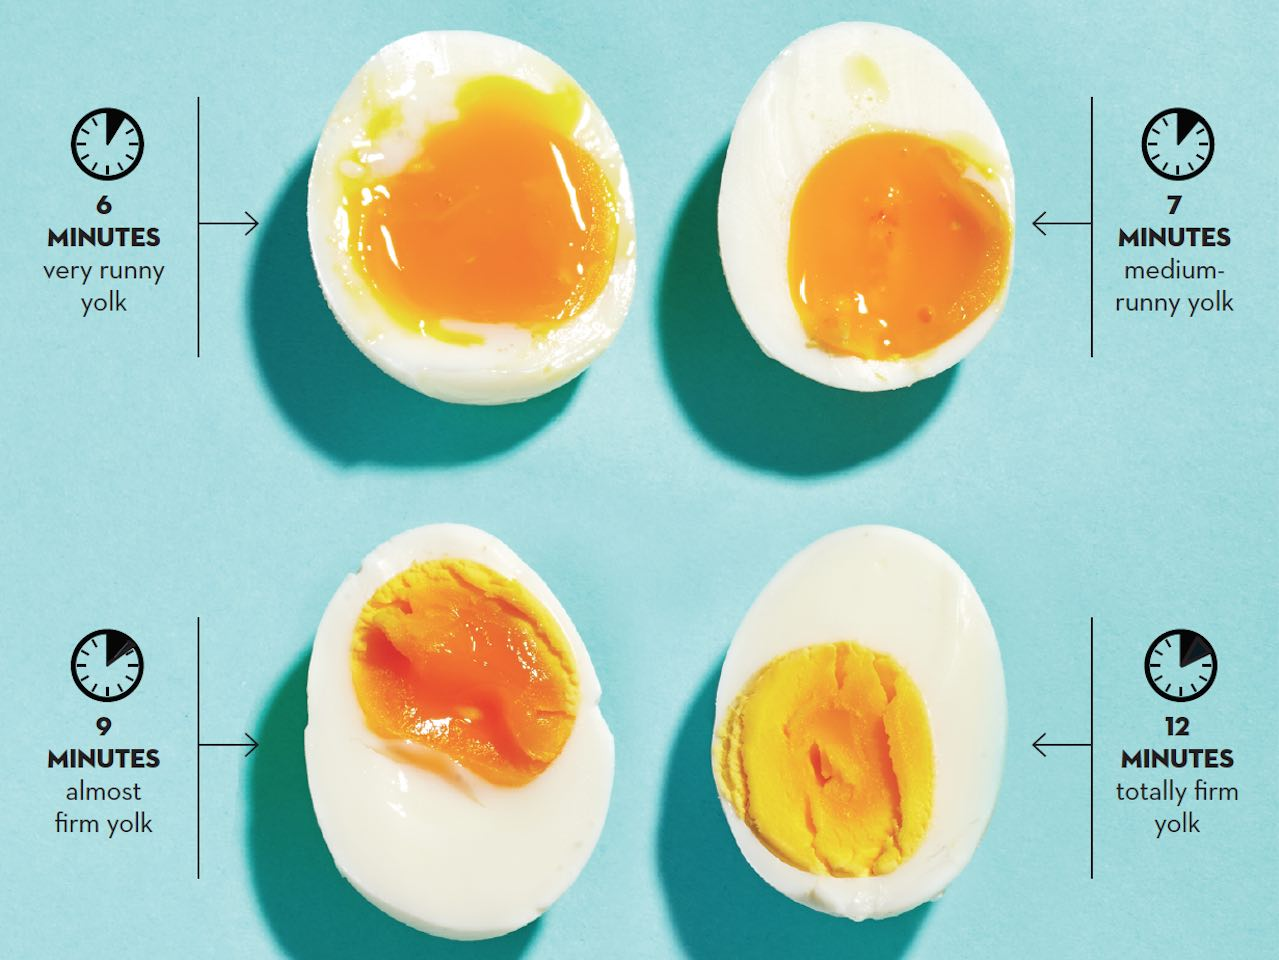 best soft boiled egg, medium soft-boiled egg, medium boiled egg, hard boiled egg